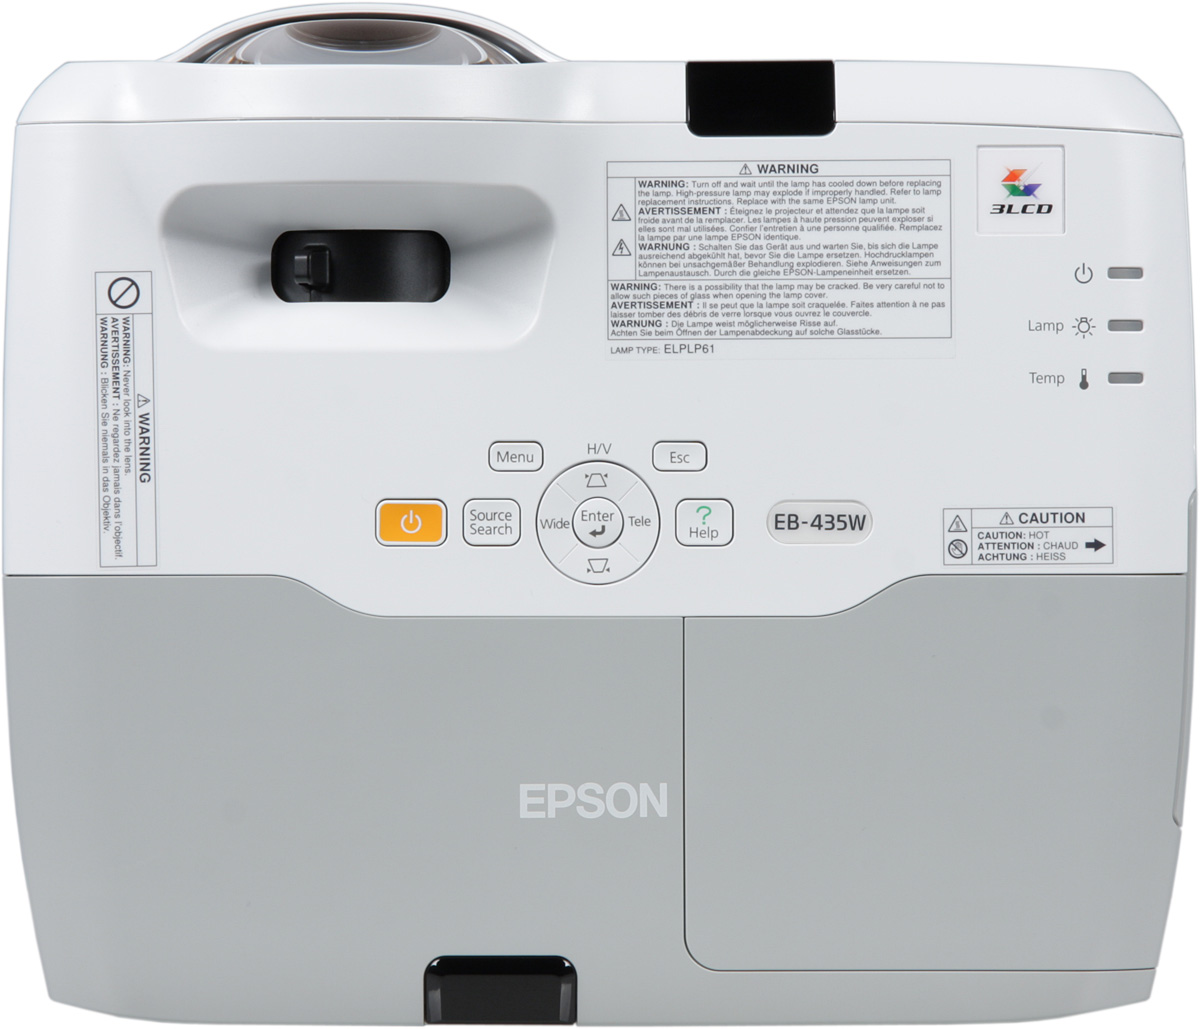 Lcd Epson Eb 435w S300 Projector